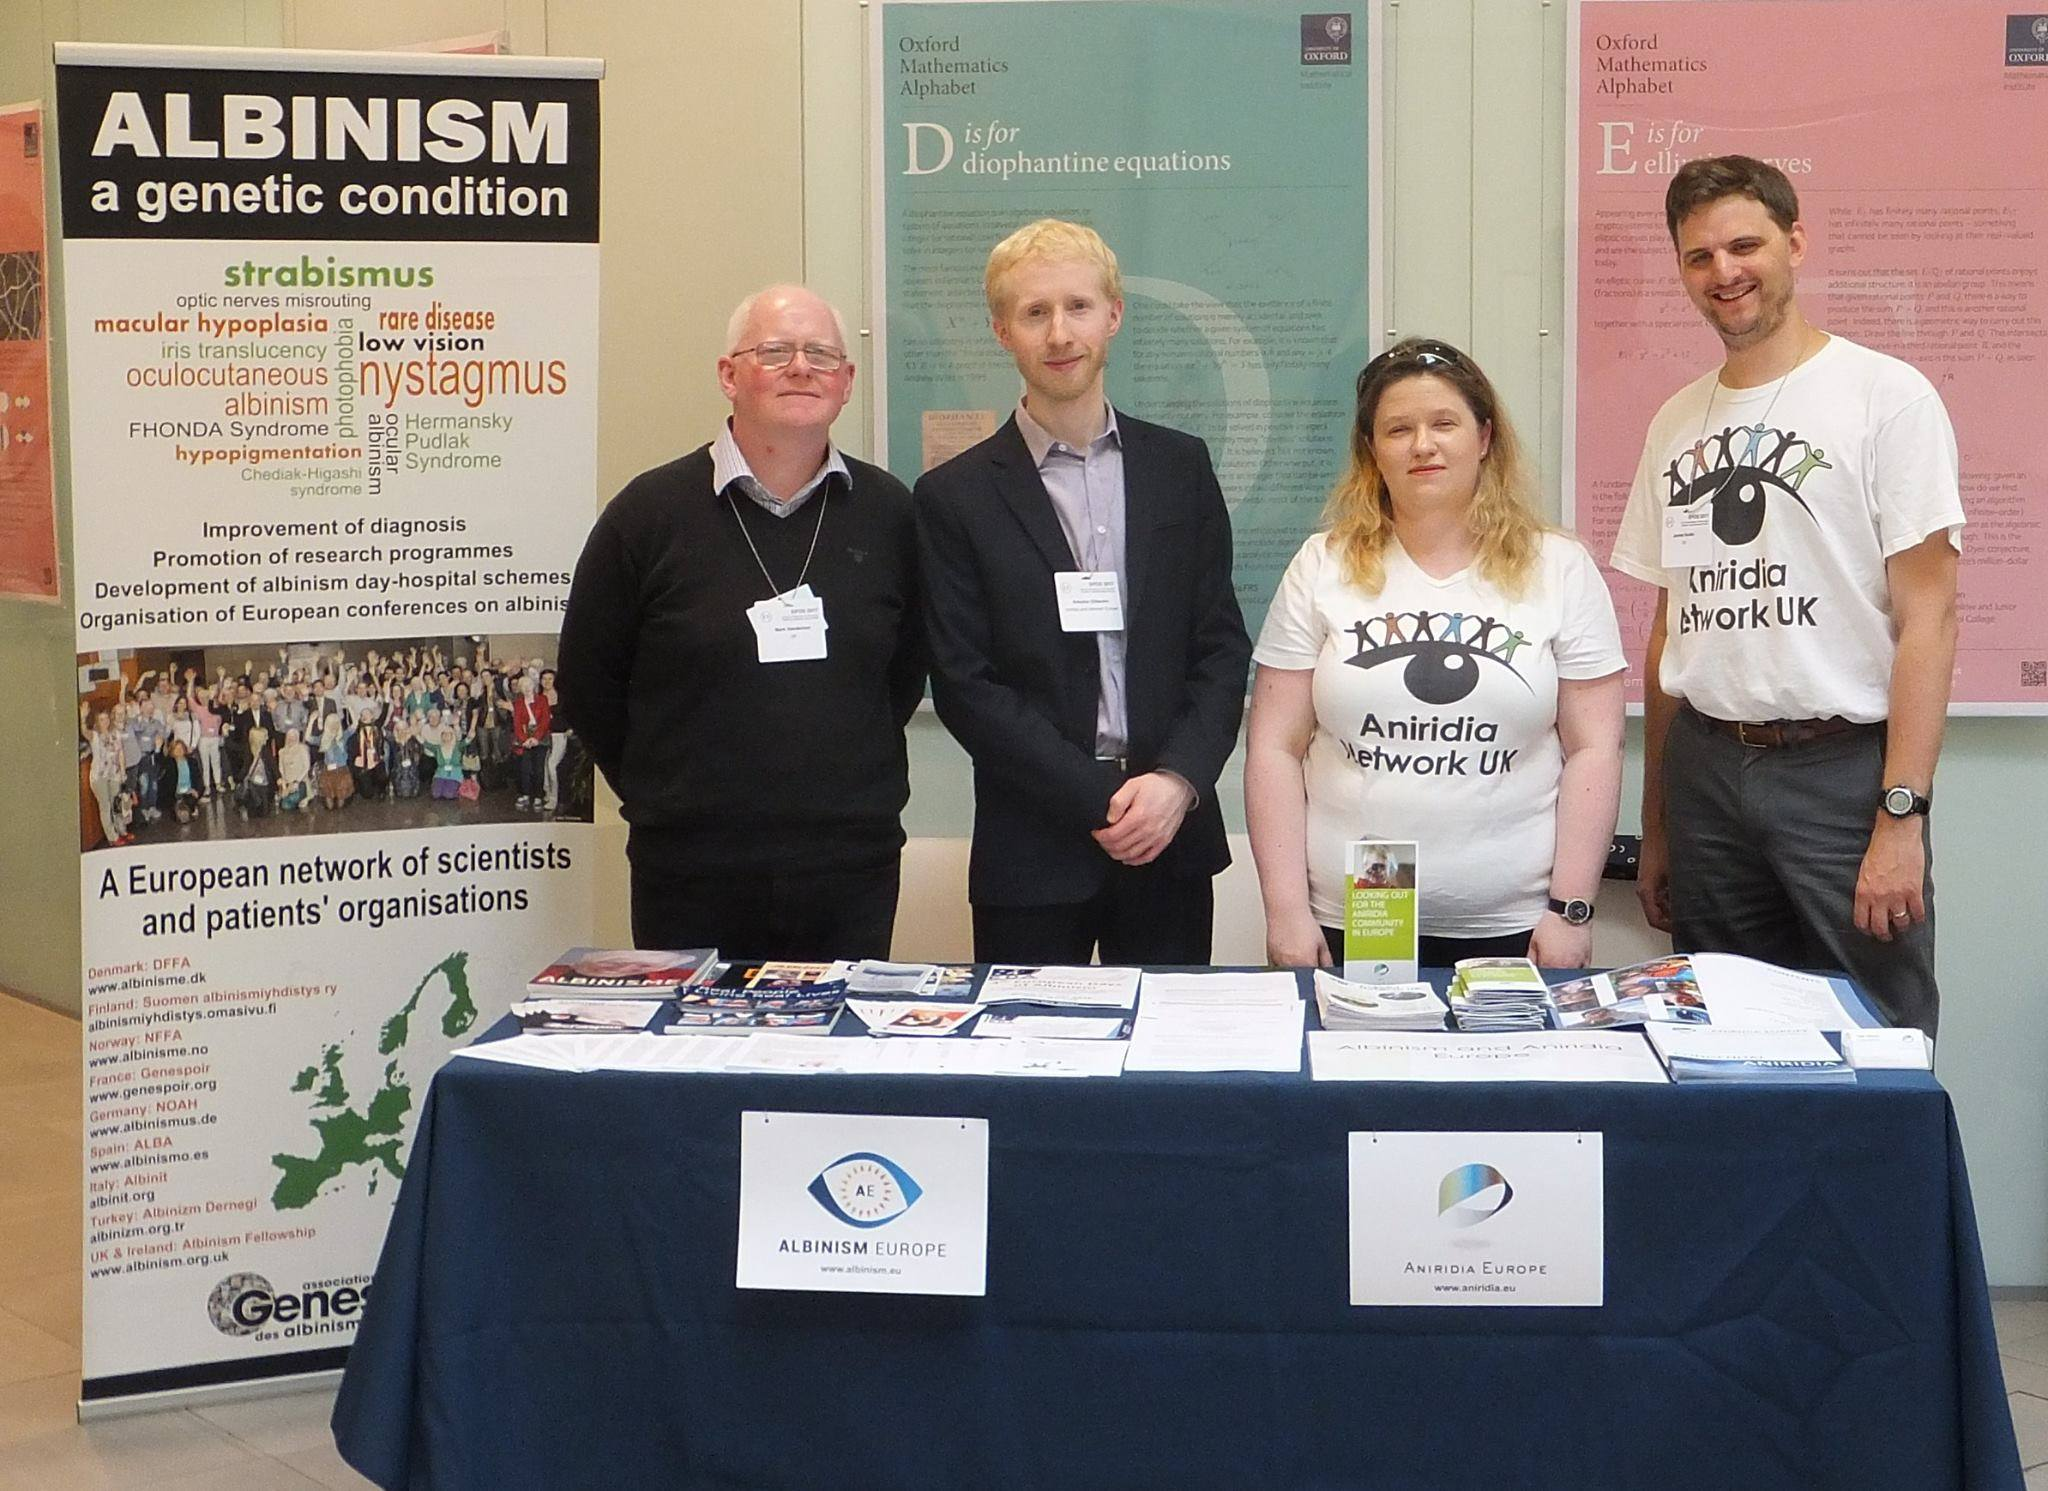 Katherine Atkinson and James Buller represented Aniridia Europe on a stall shared with Antoine Gliksohn and Mark Sanderson from Albinism Europe at the European Paediatric Ophthalmological Society meeting.